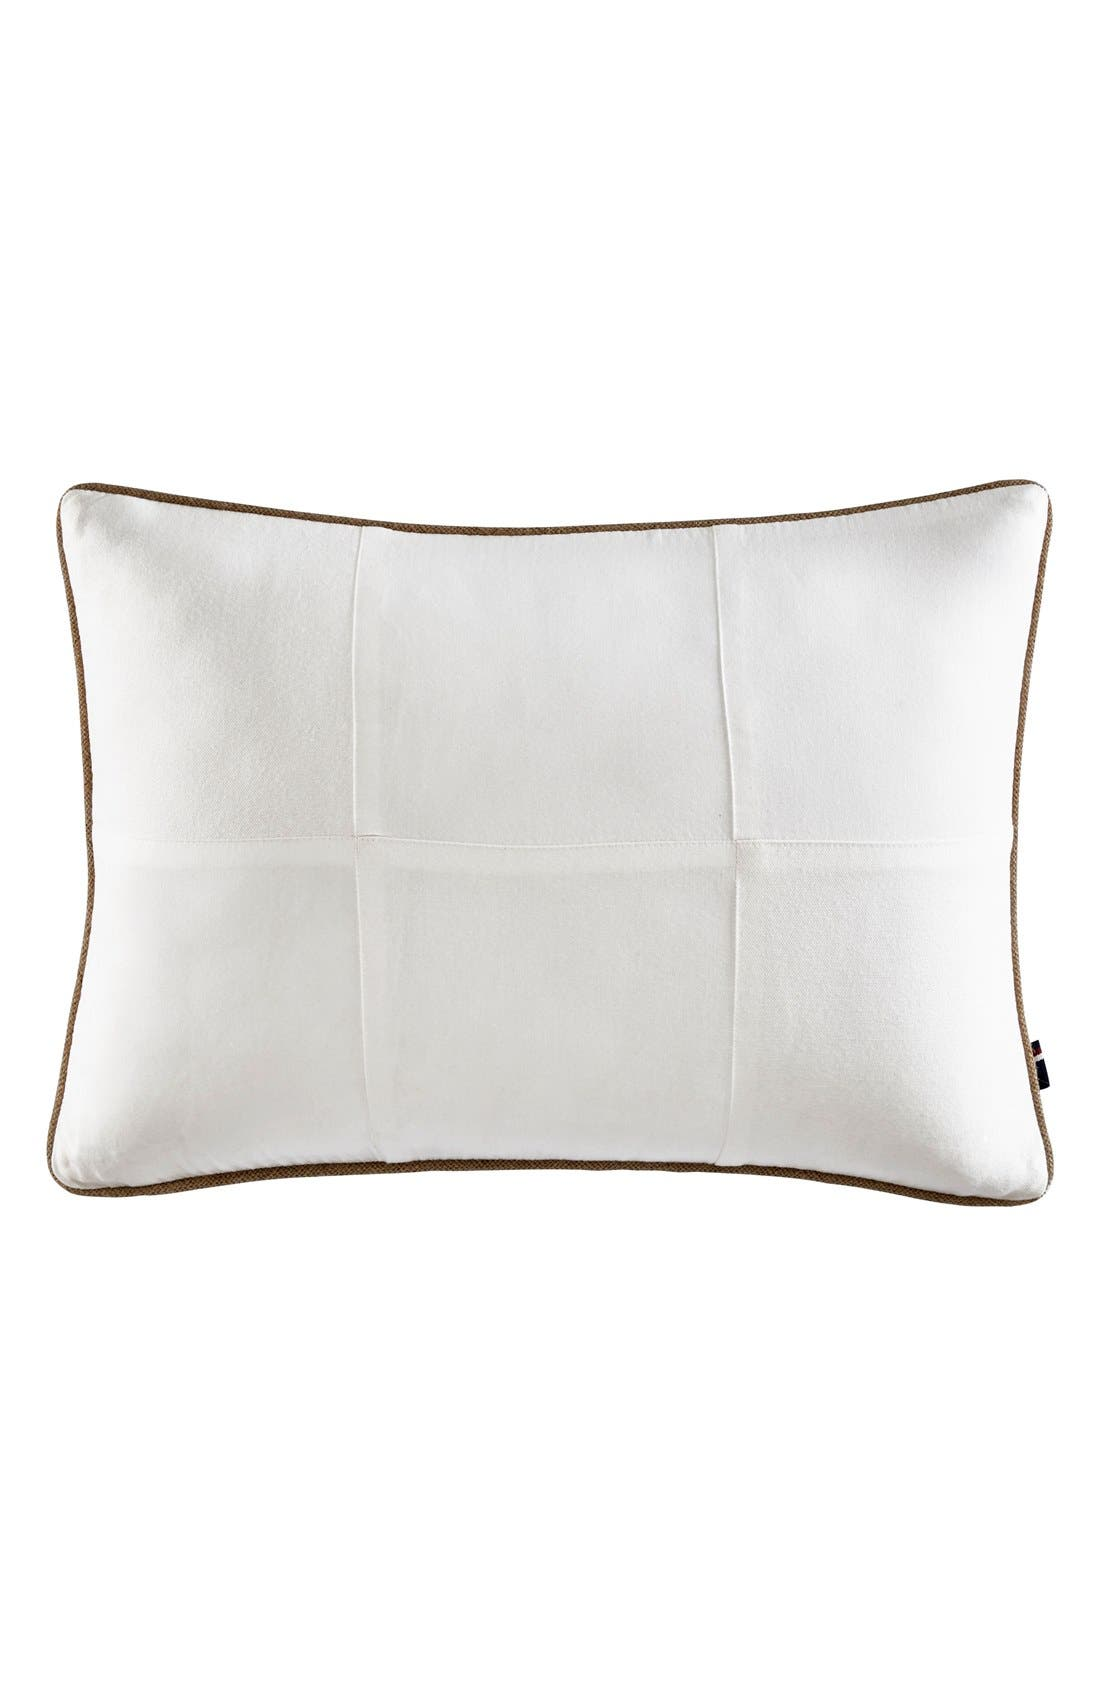 Longview Accent Pillow,                         Main,                         color, White